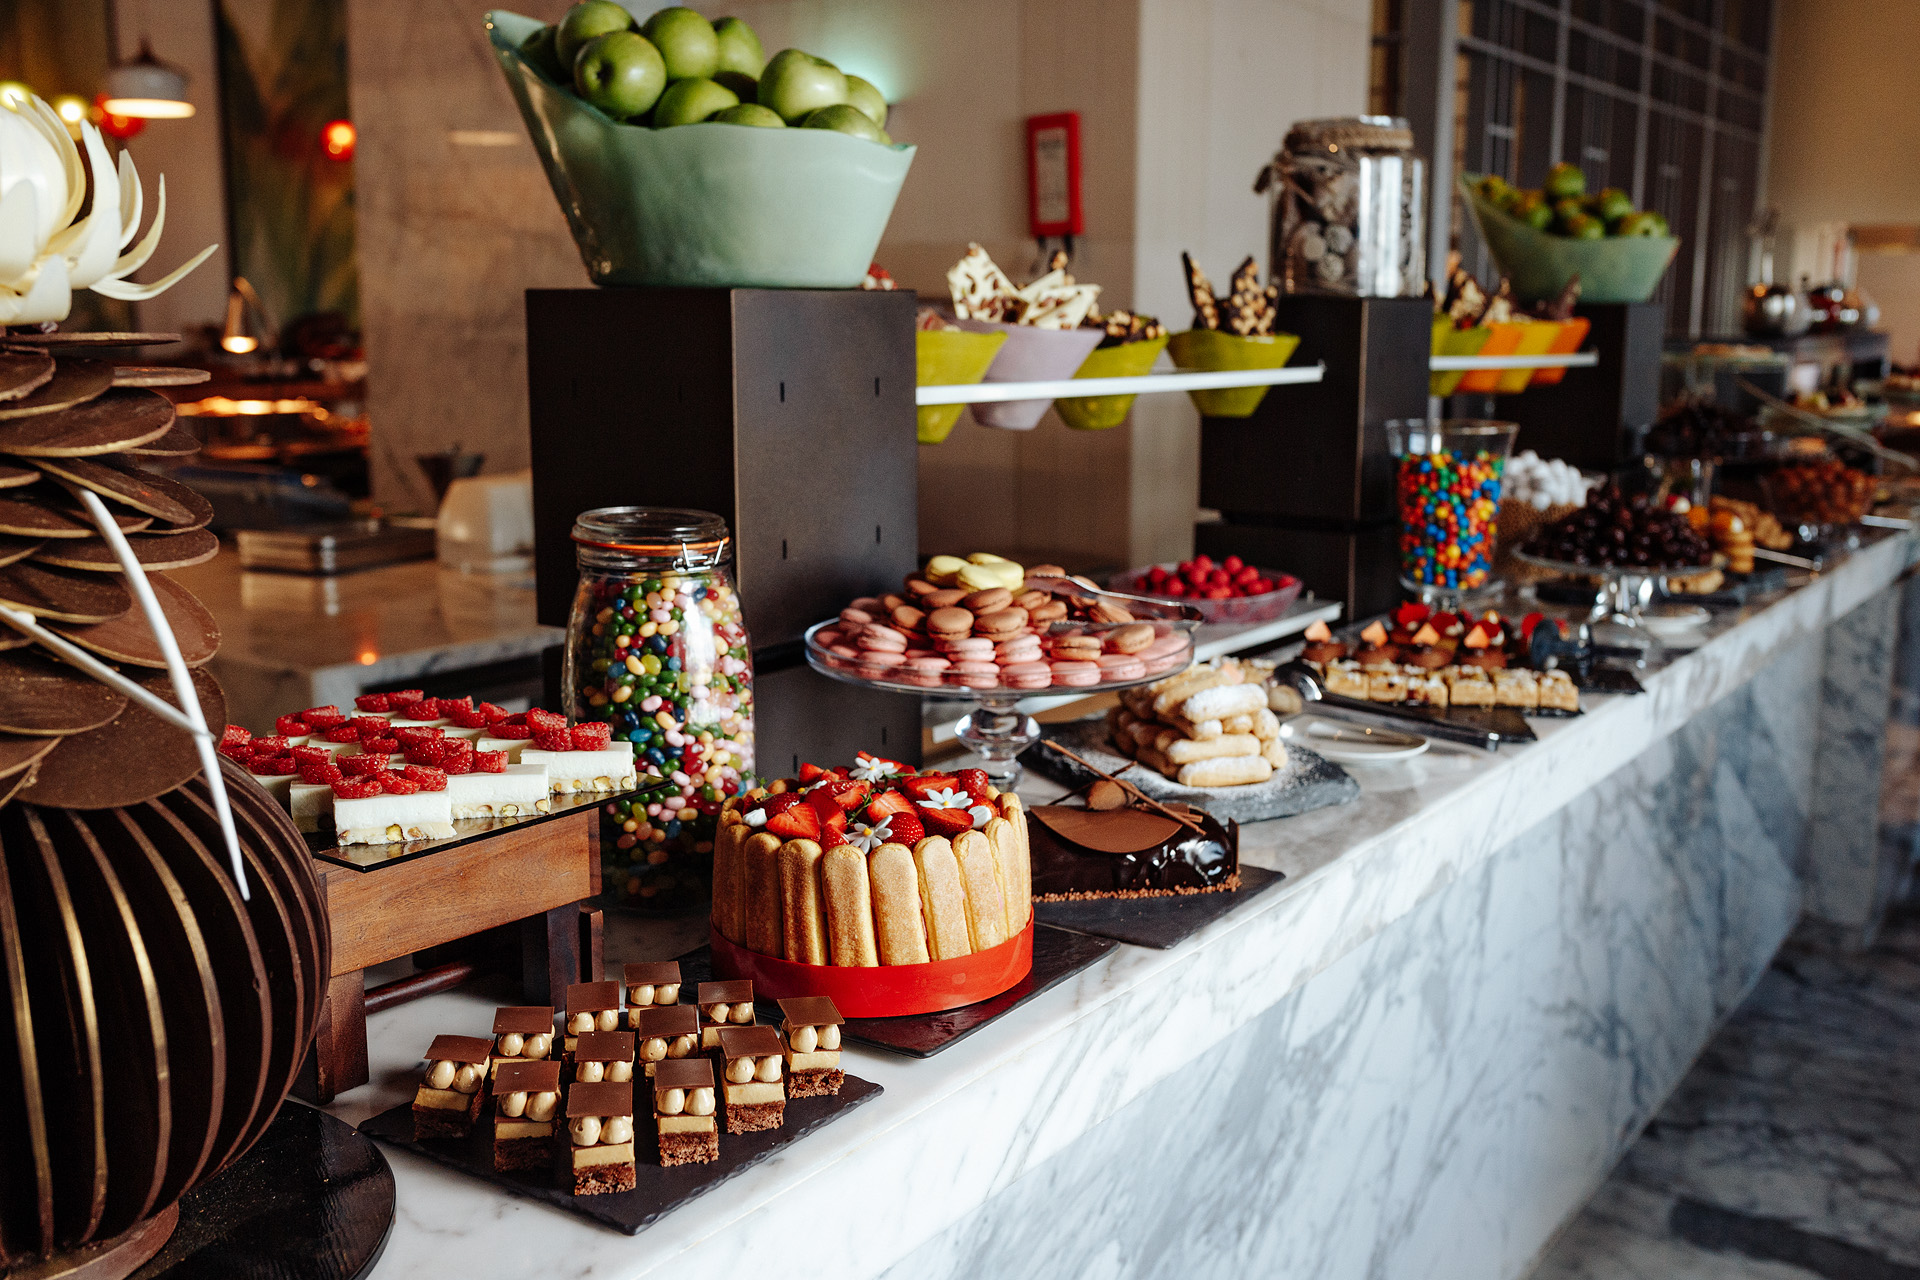 The City Brunch at The Westin Dubai